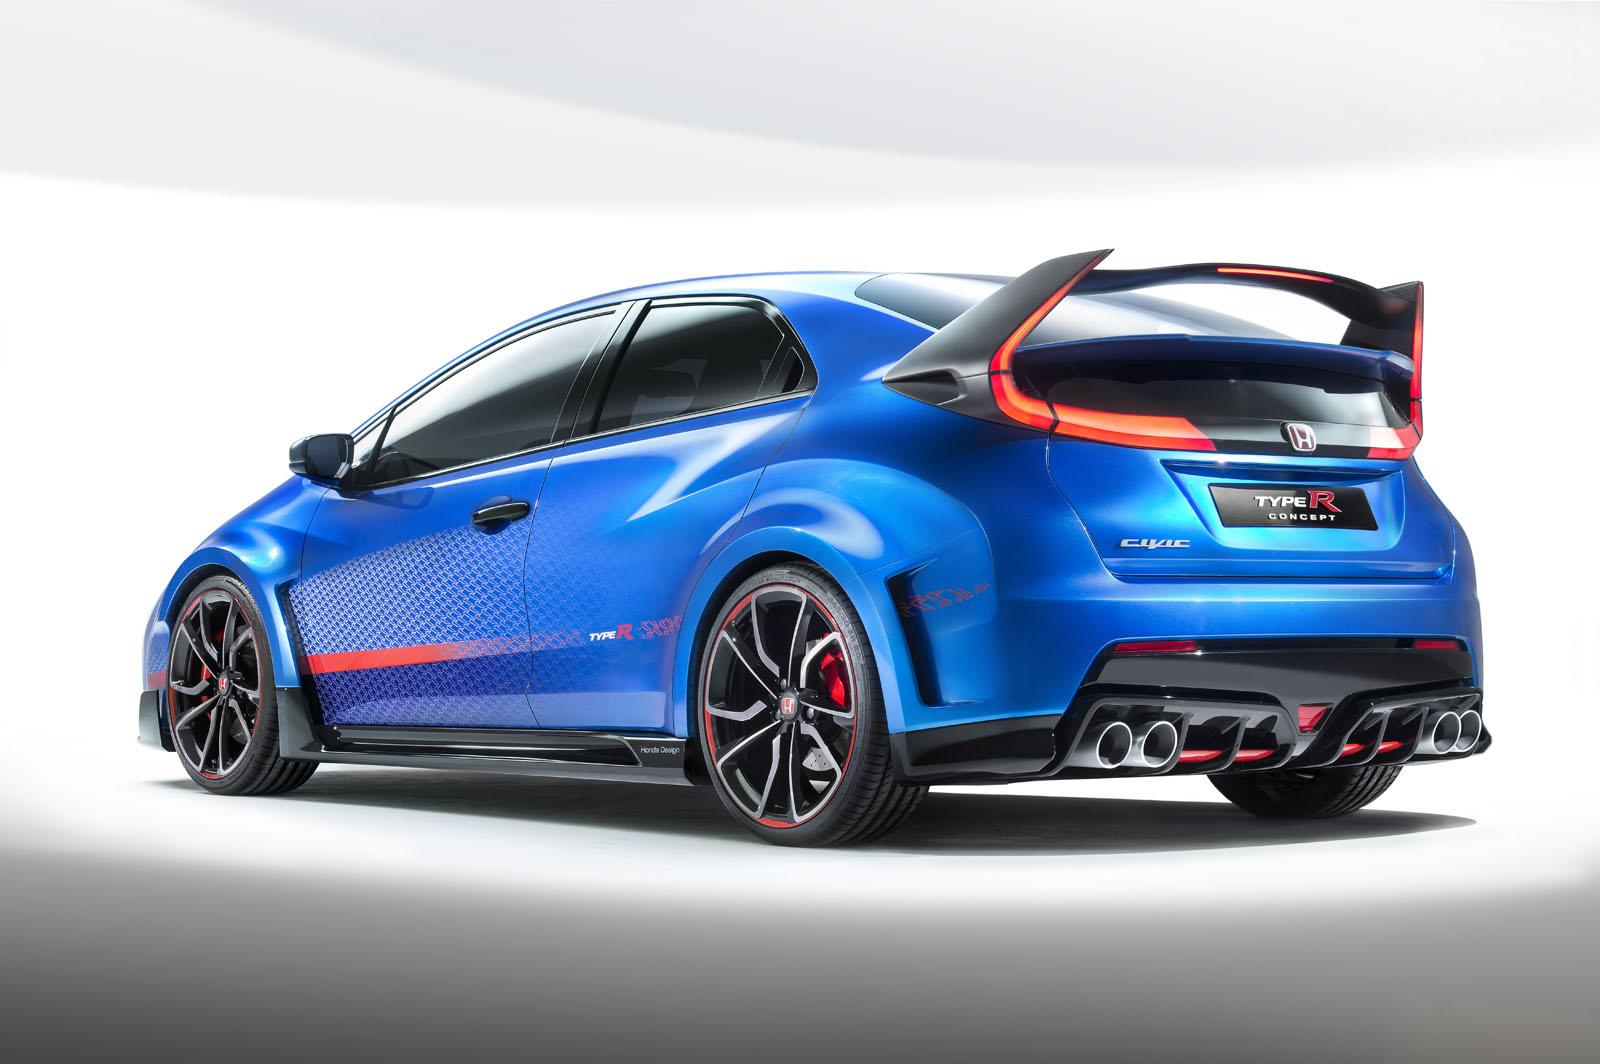 2015 Honda Civic Type R Wallpapers For Laptops 4077 1600x1064